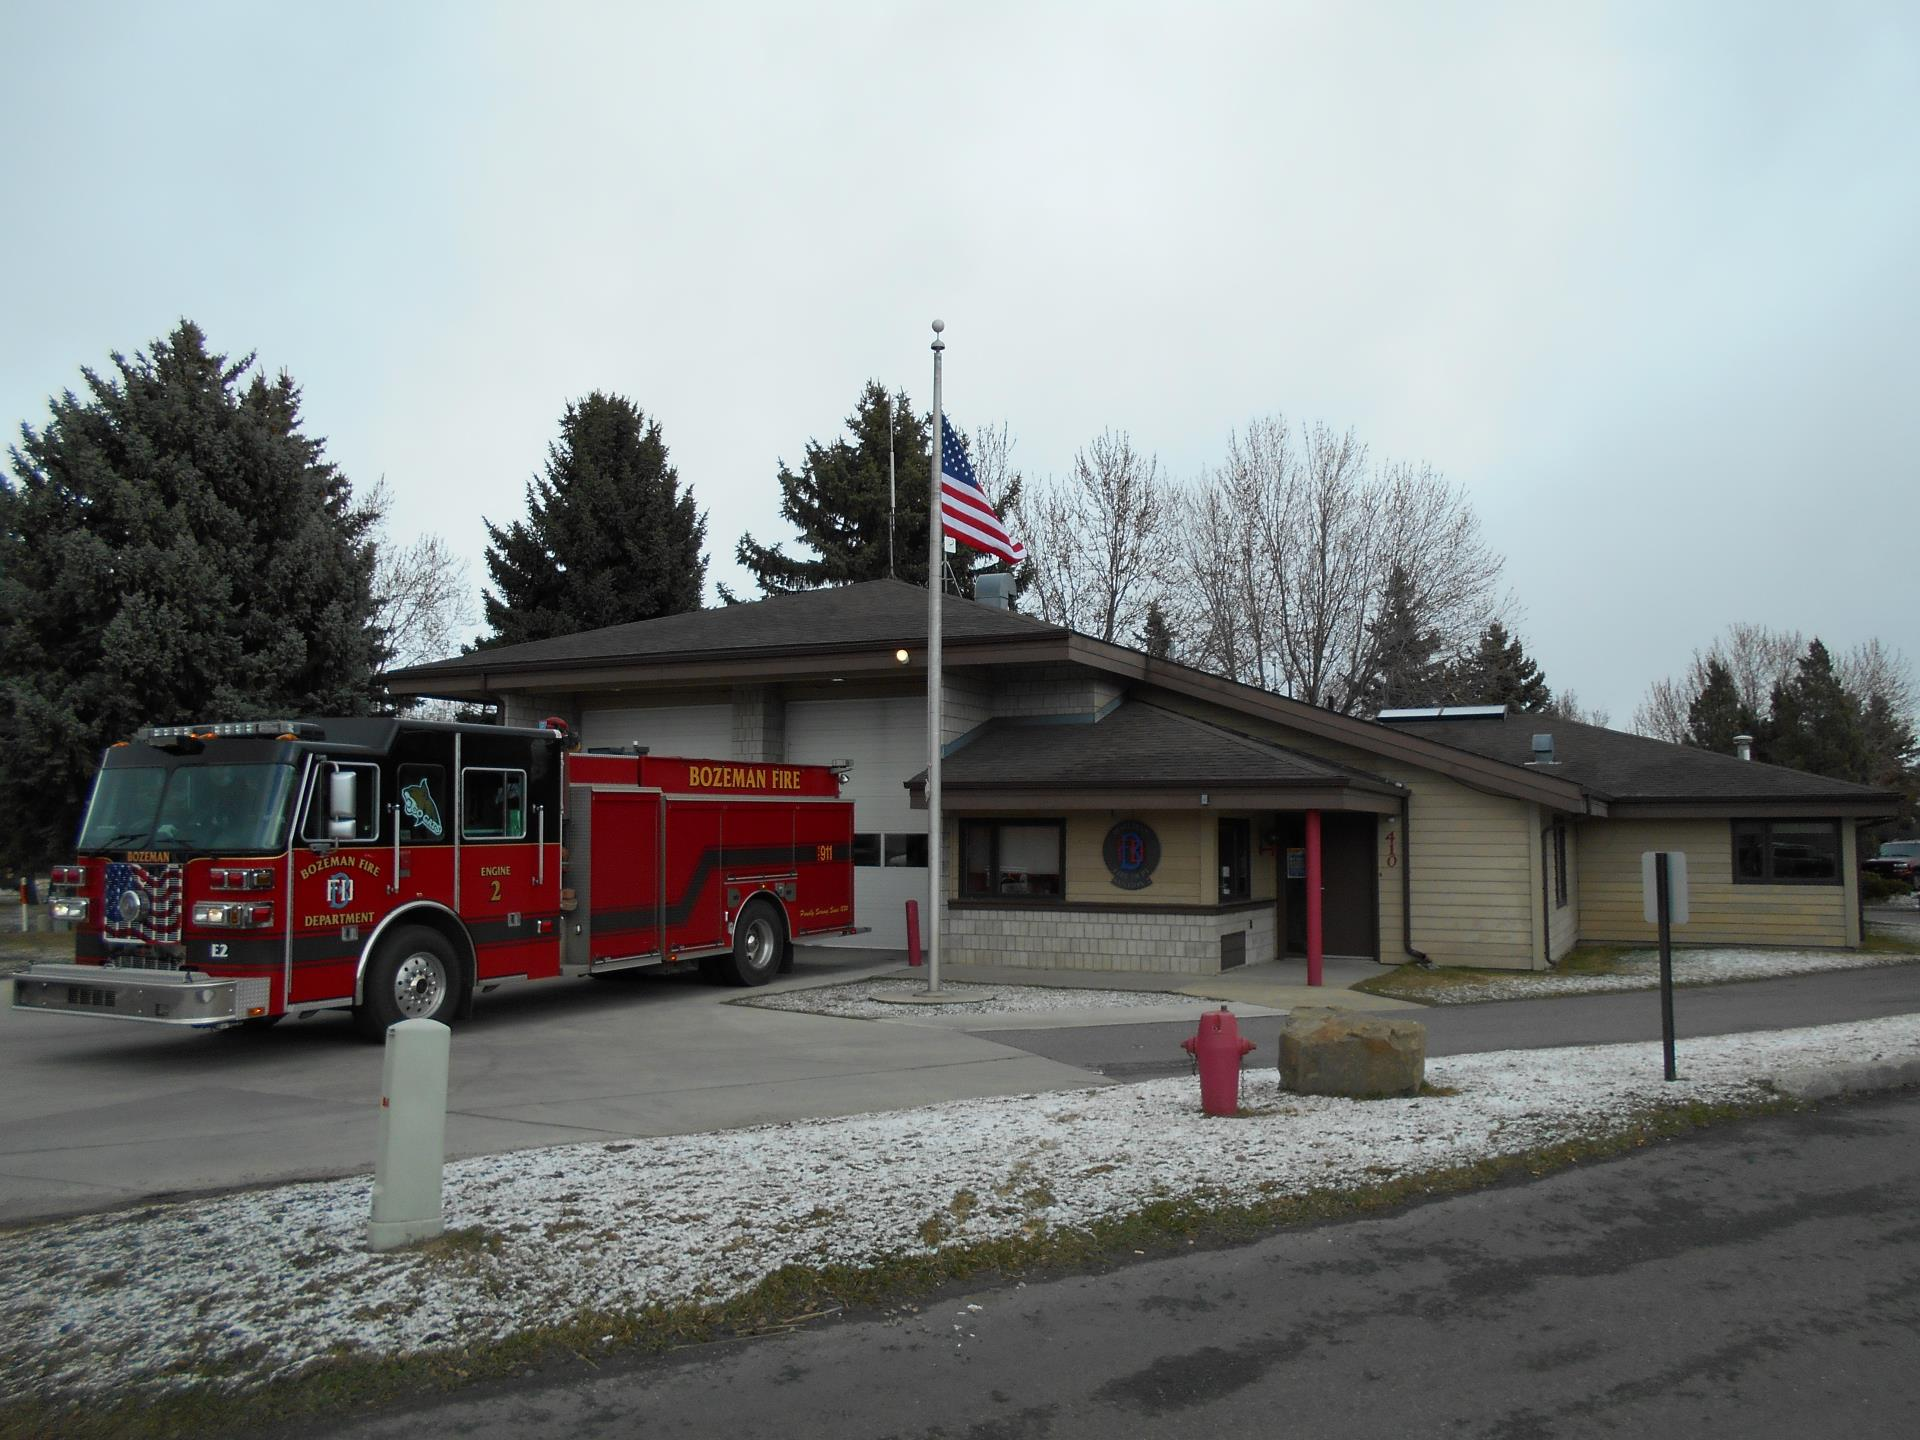 Fire Station 2 and Fire Engine 2